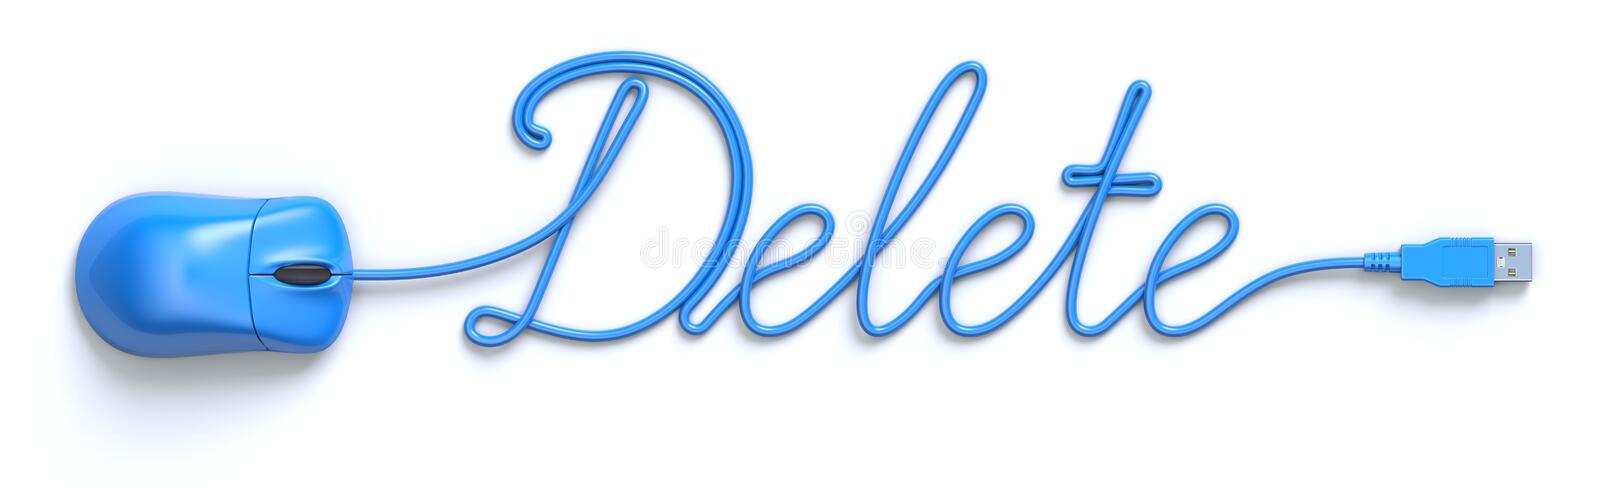 Blue mouse and cable in the shape of Delete word. 3D illustration royalty free illustration